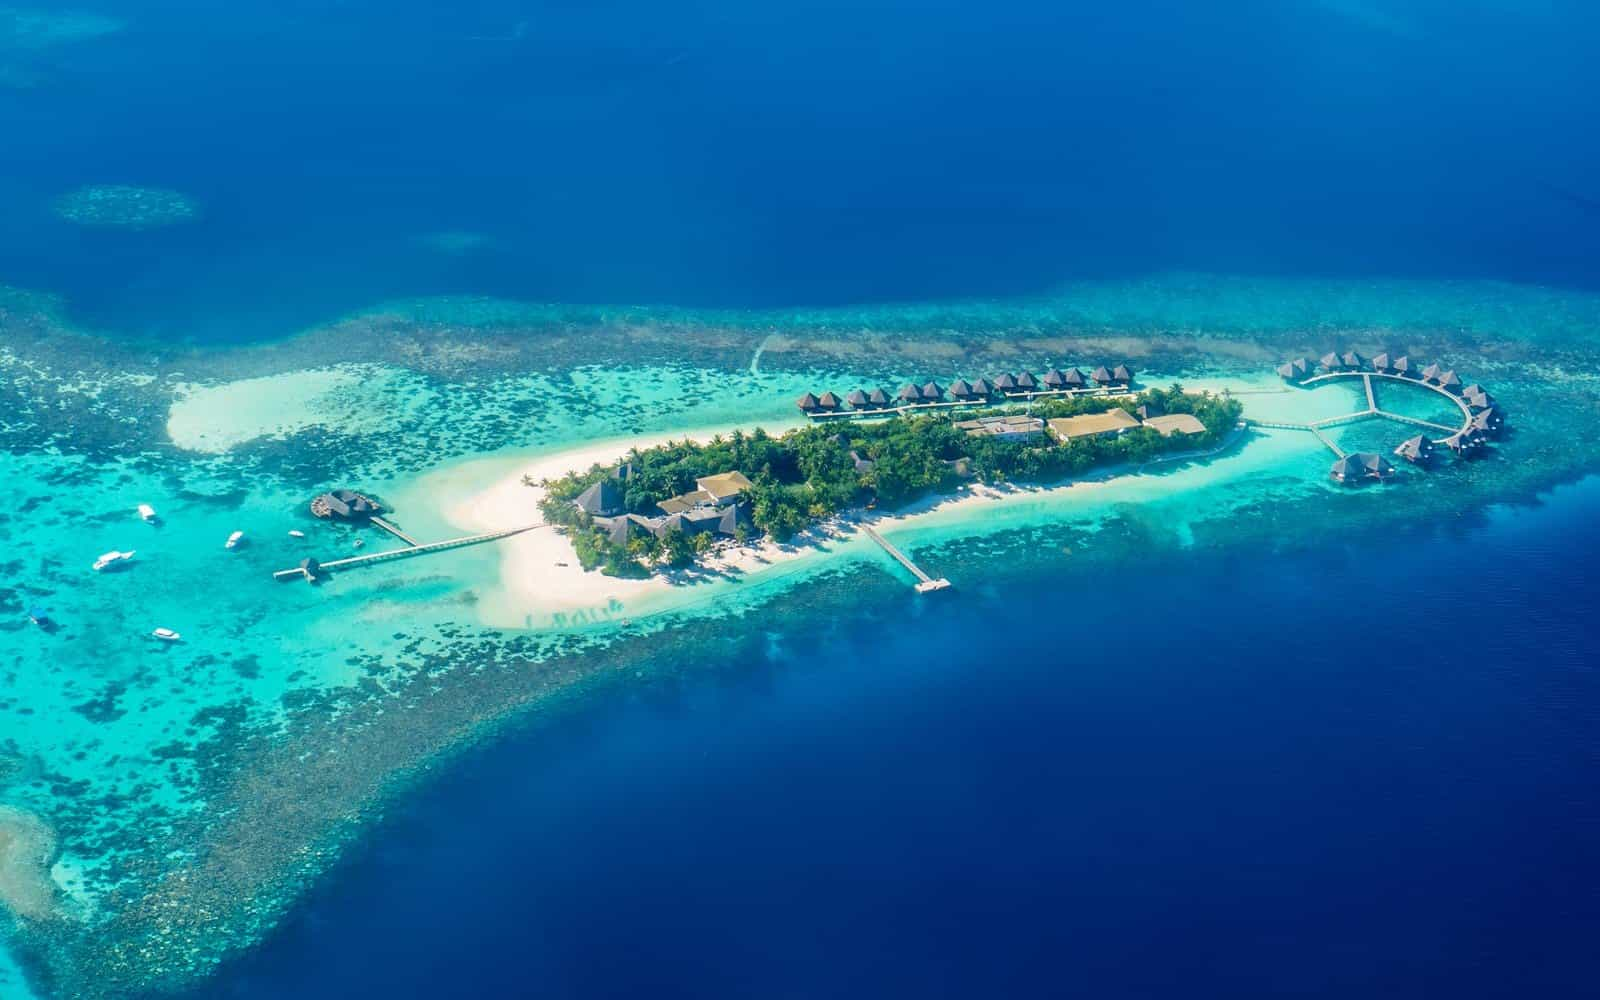 maldives-aerial-BLUEST1216